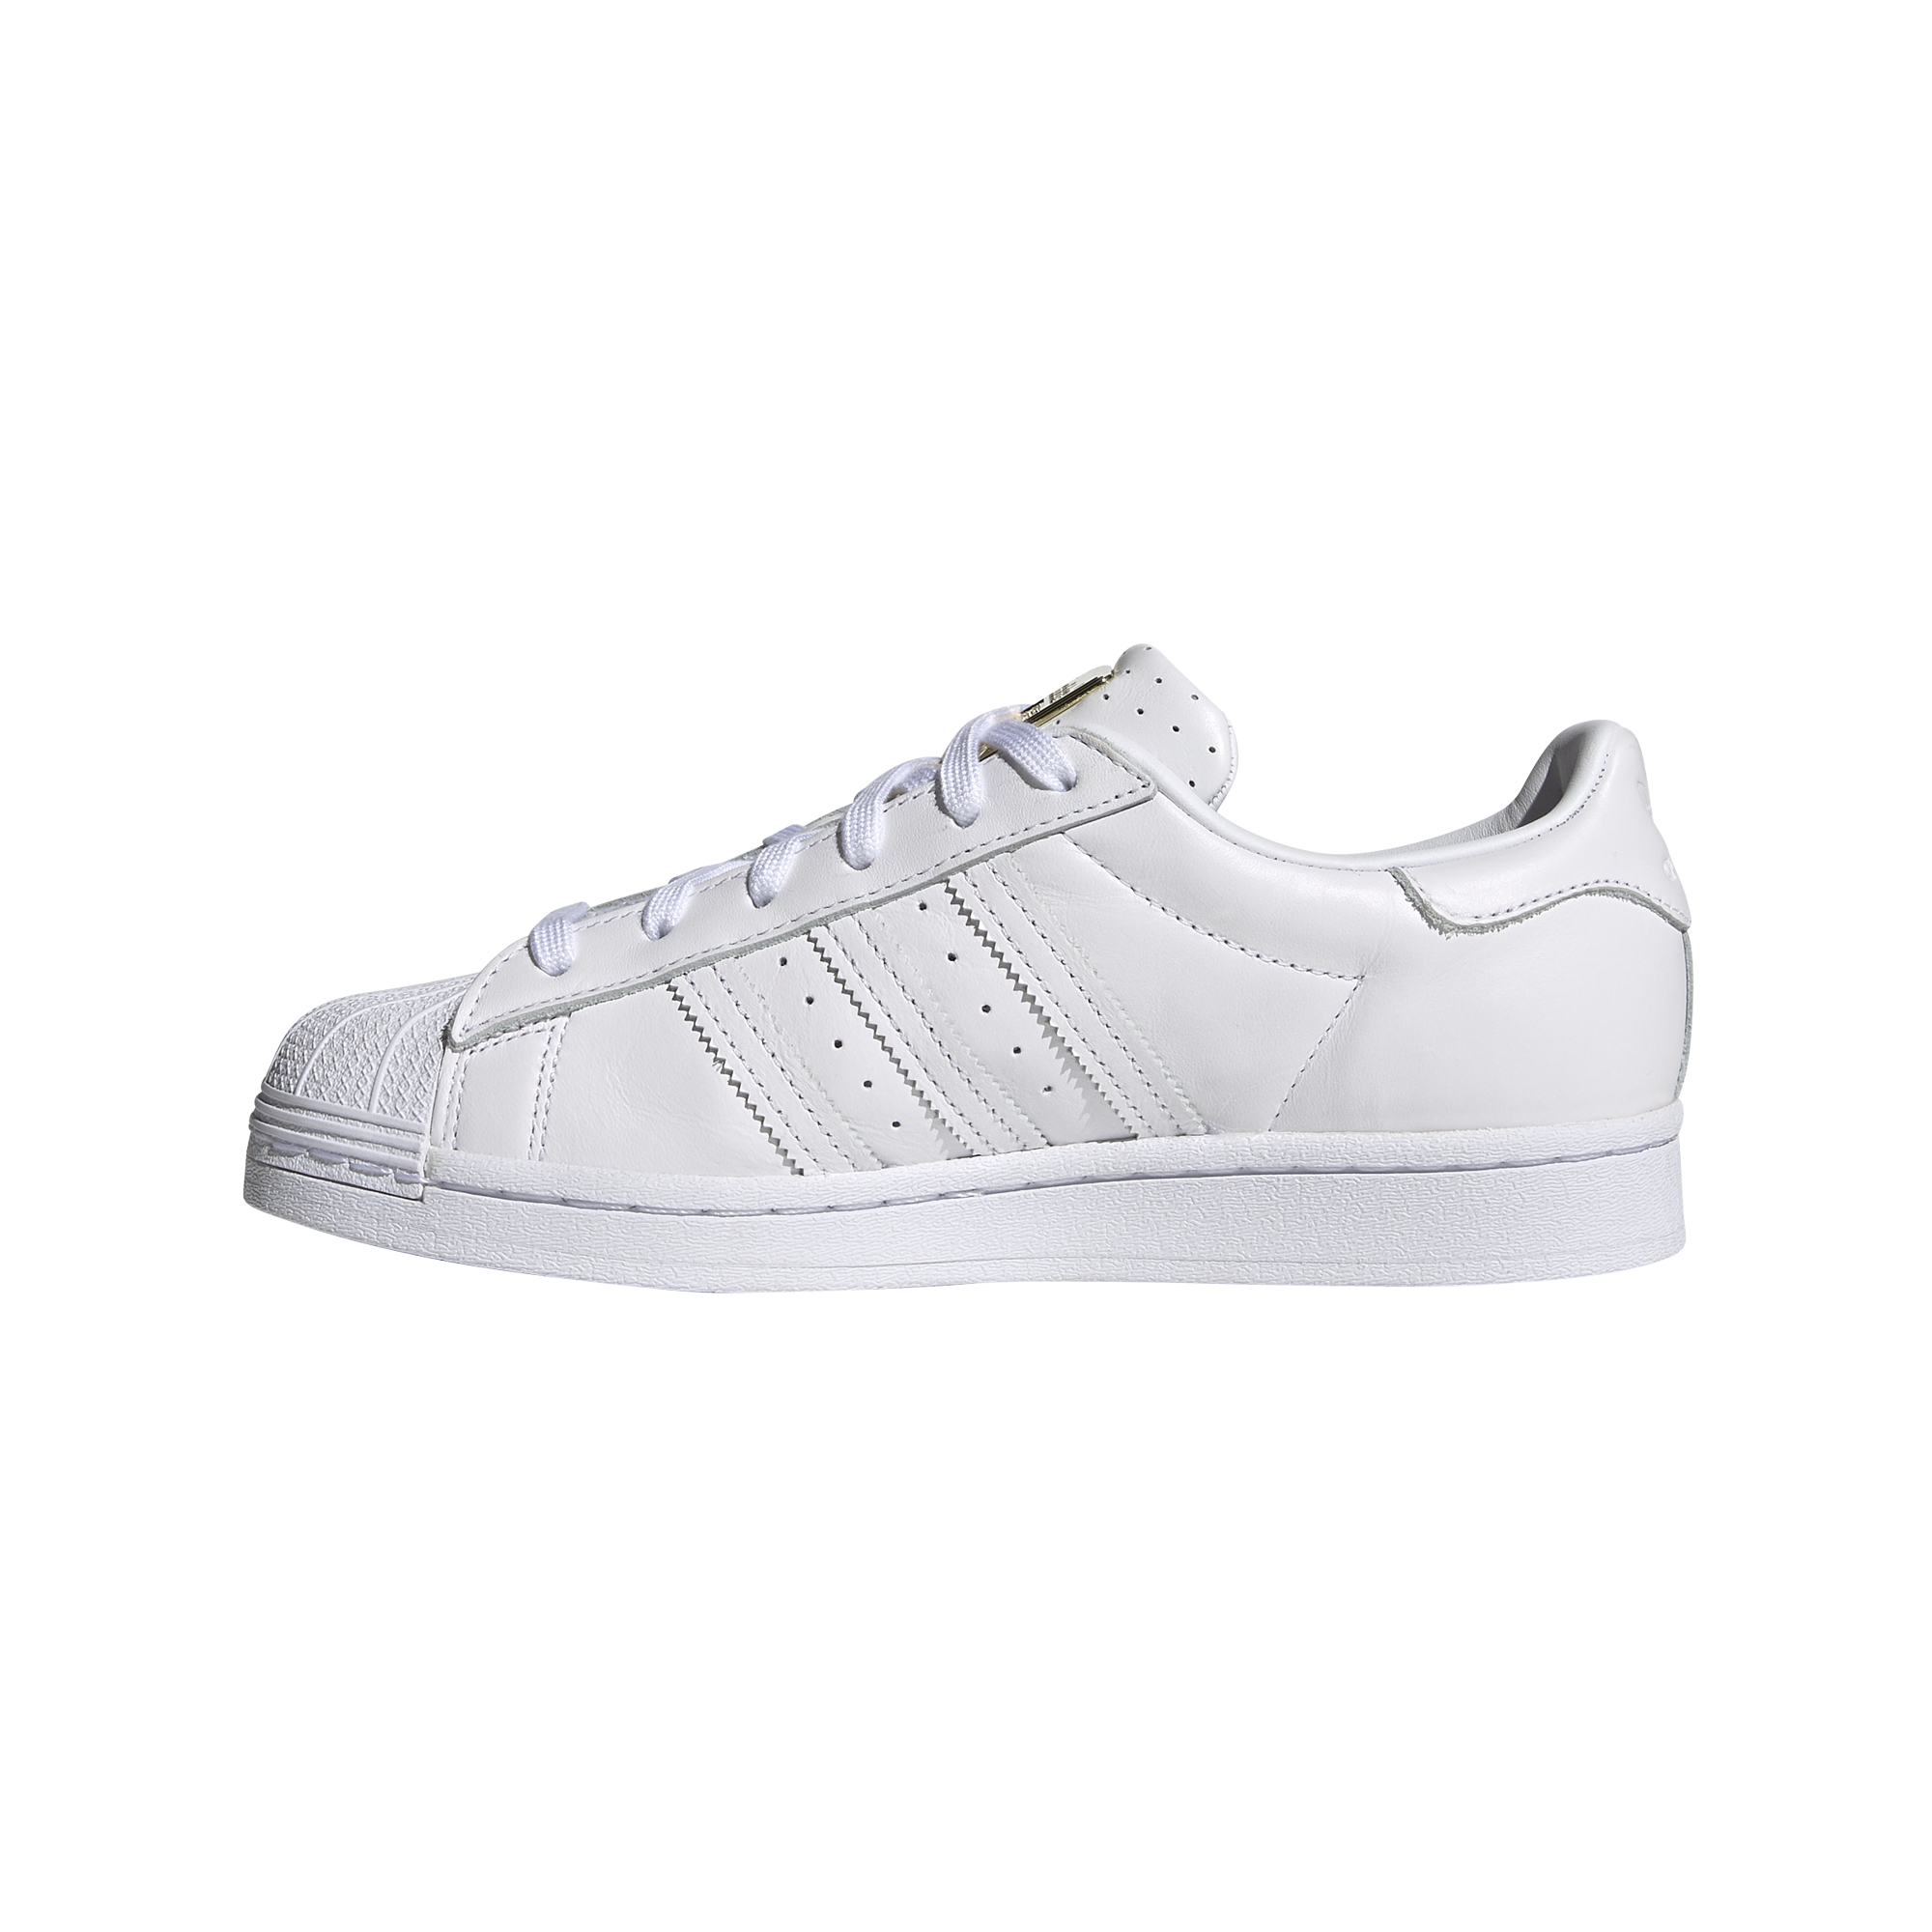 adidas Superstar W Ftw White/ Ftw White/ Gold Metalic FW3713